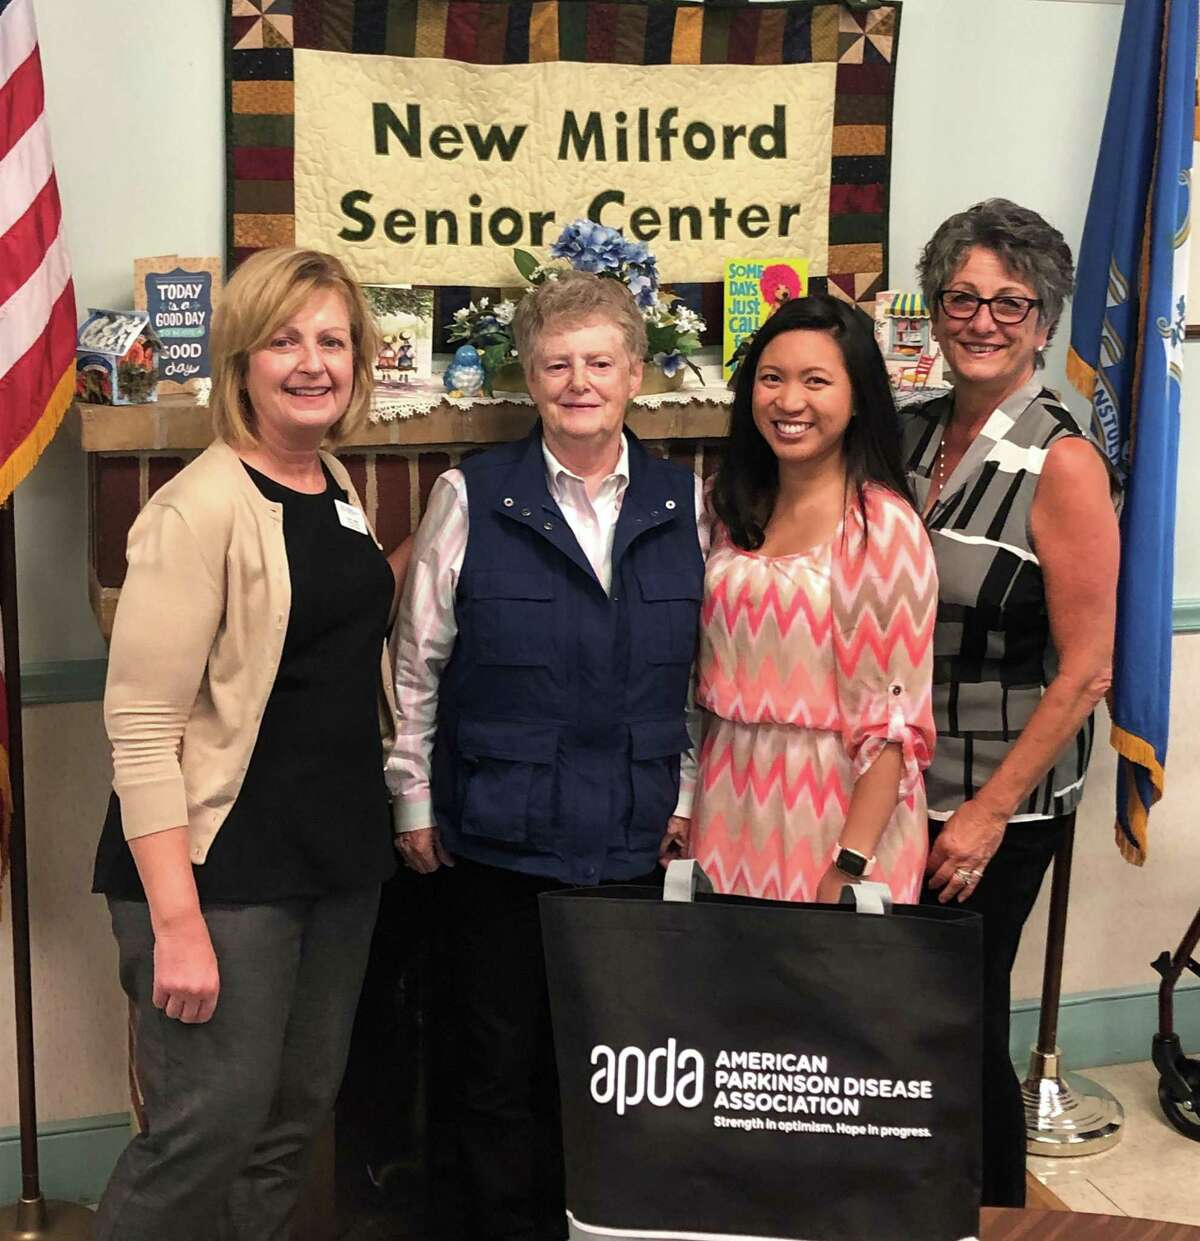 Bridgewater Municipal Agent Dawn MacNutt, second from left, will lead the new Parkinson's Support Group at the New Milford Senior Center. She is shown with, from left to right, Susan Lather, information and referral coordinator for the American Parkinson's Disease Association in Connecticut, senior center Program Coordinator and Assistant Director Jasmin Ducusin and Director Carolyn Haglund.